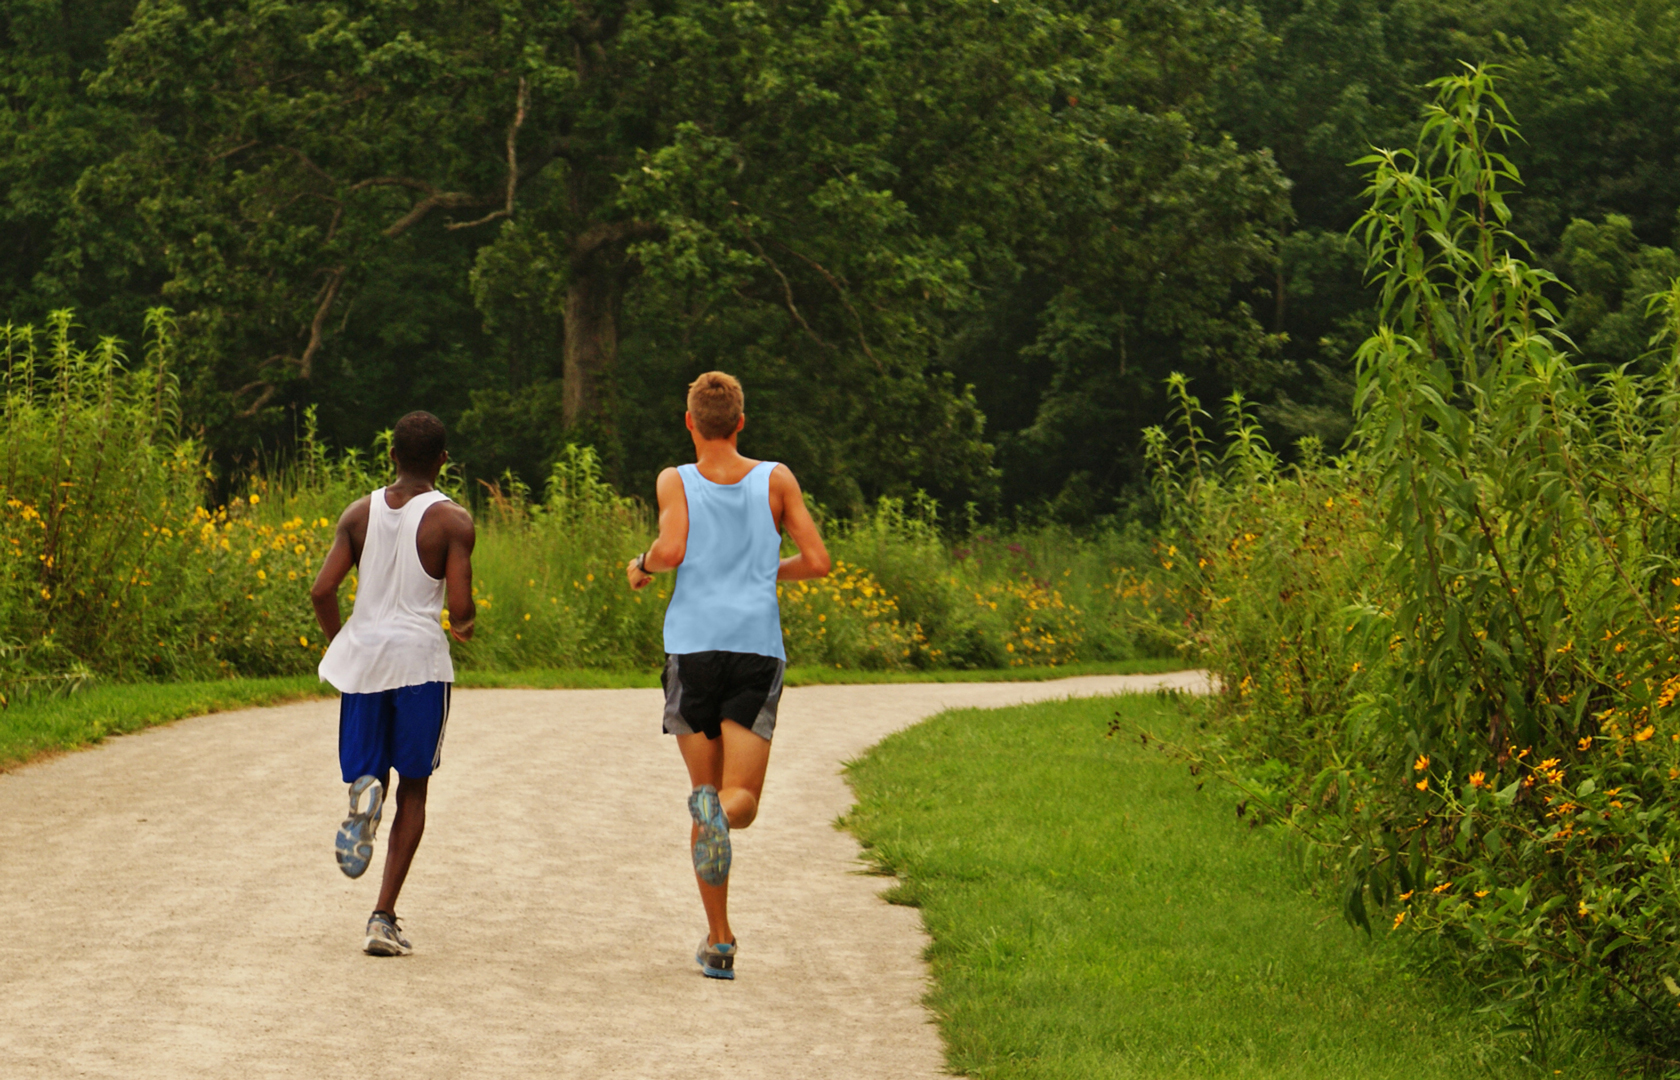 Two boys jogging on Darby Creek Greenway Trail at Battelle Darby Creek Metro Park